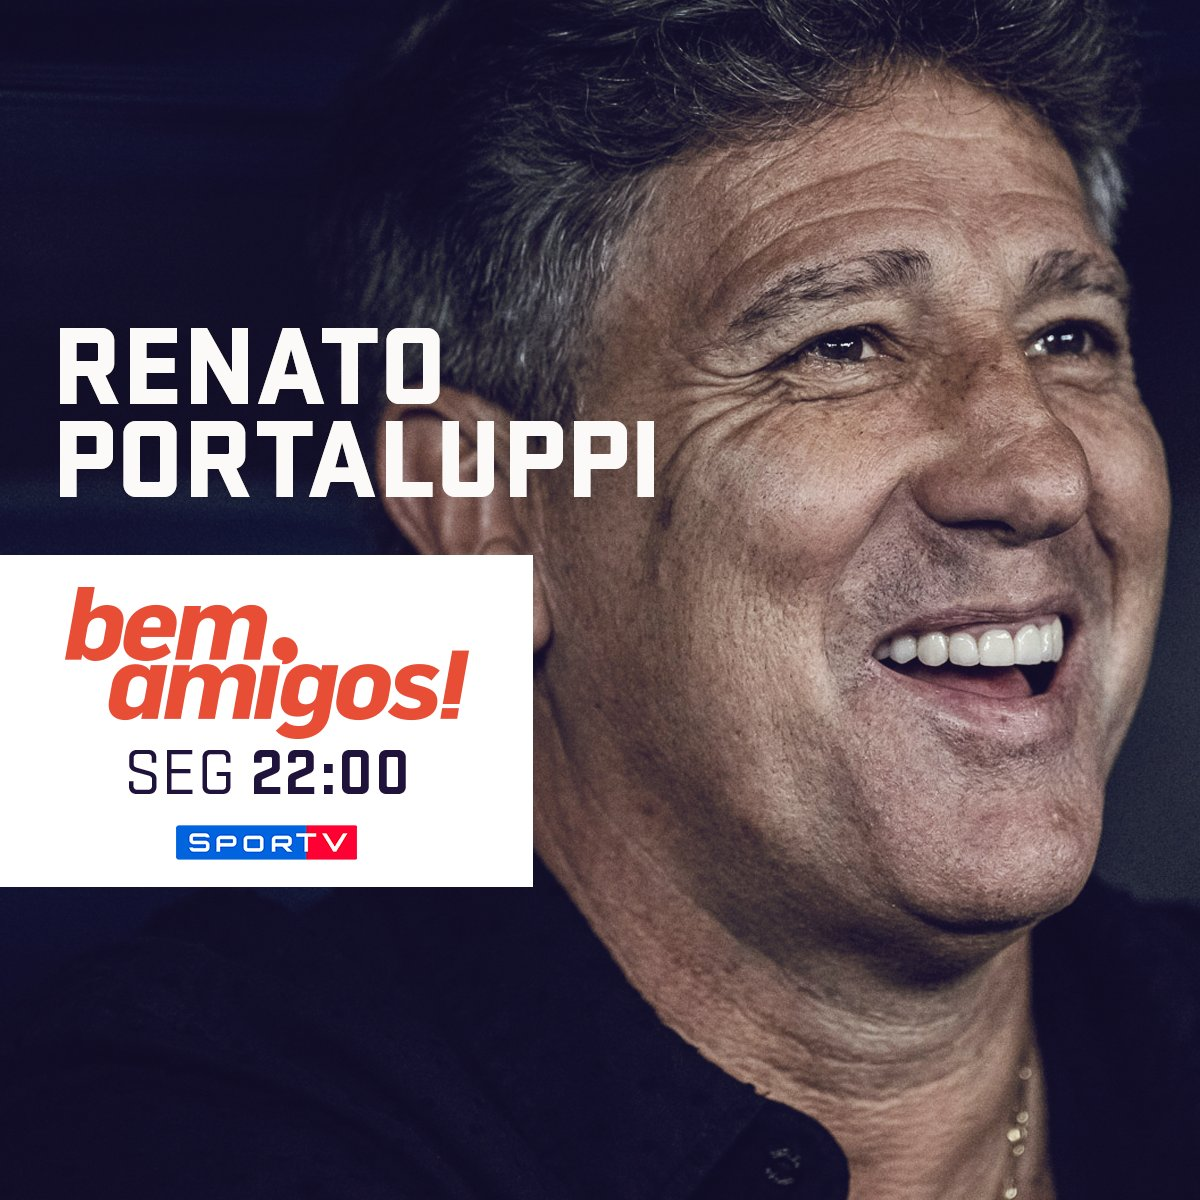 SporTV's photo on Renato Portaluppi